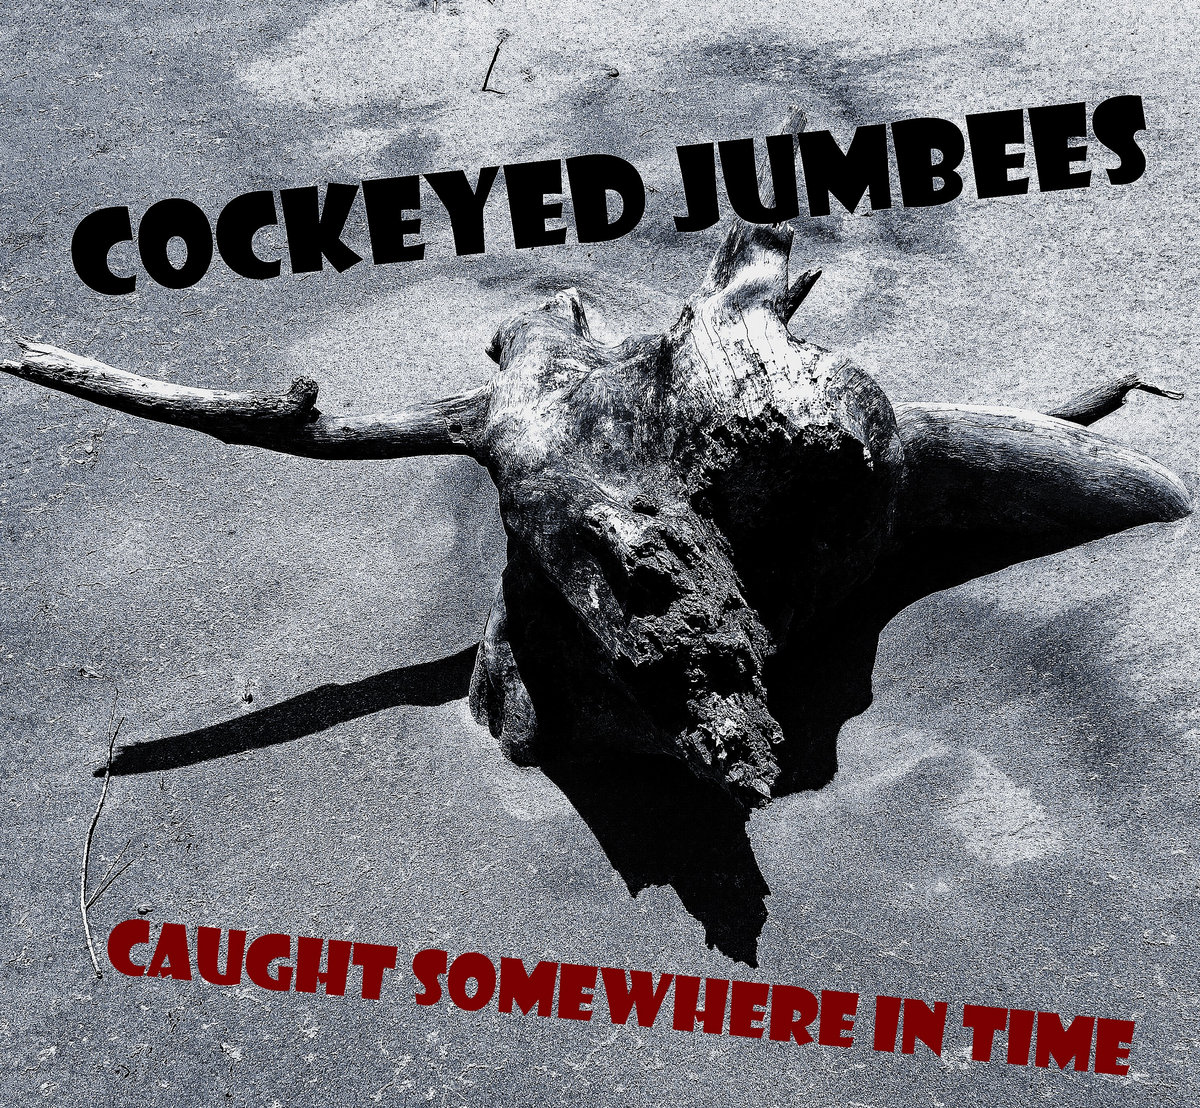 Caught Somewhere In Time by Cockeyed Jumbees